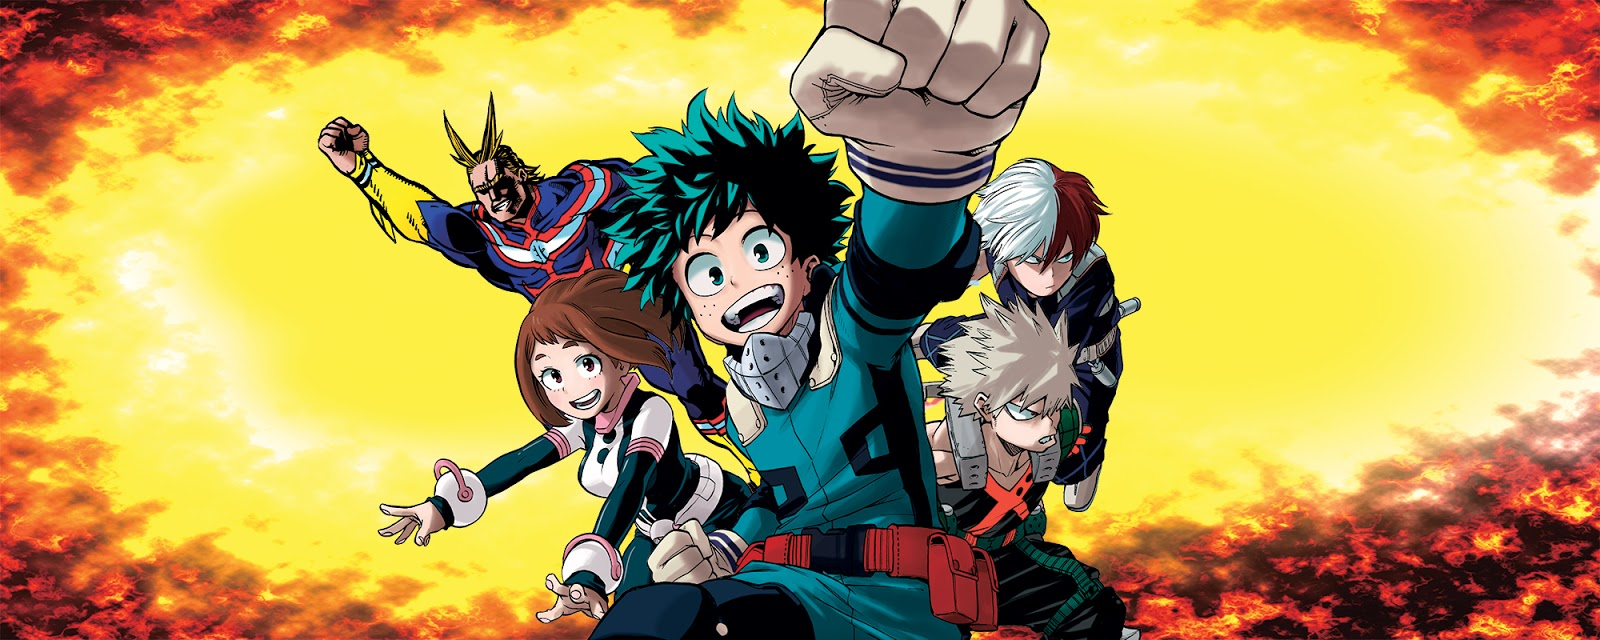 http://www.jrnotjnr.com/2017/01/my-hero-academia-season-2-new-characters-and-release-date.html